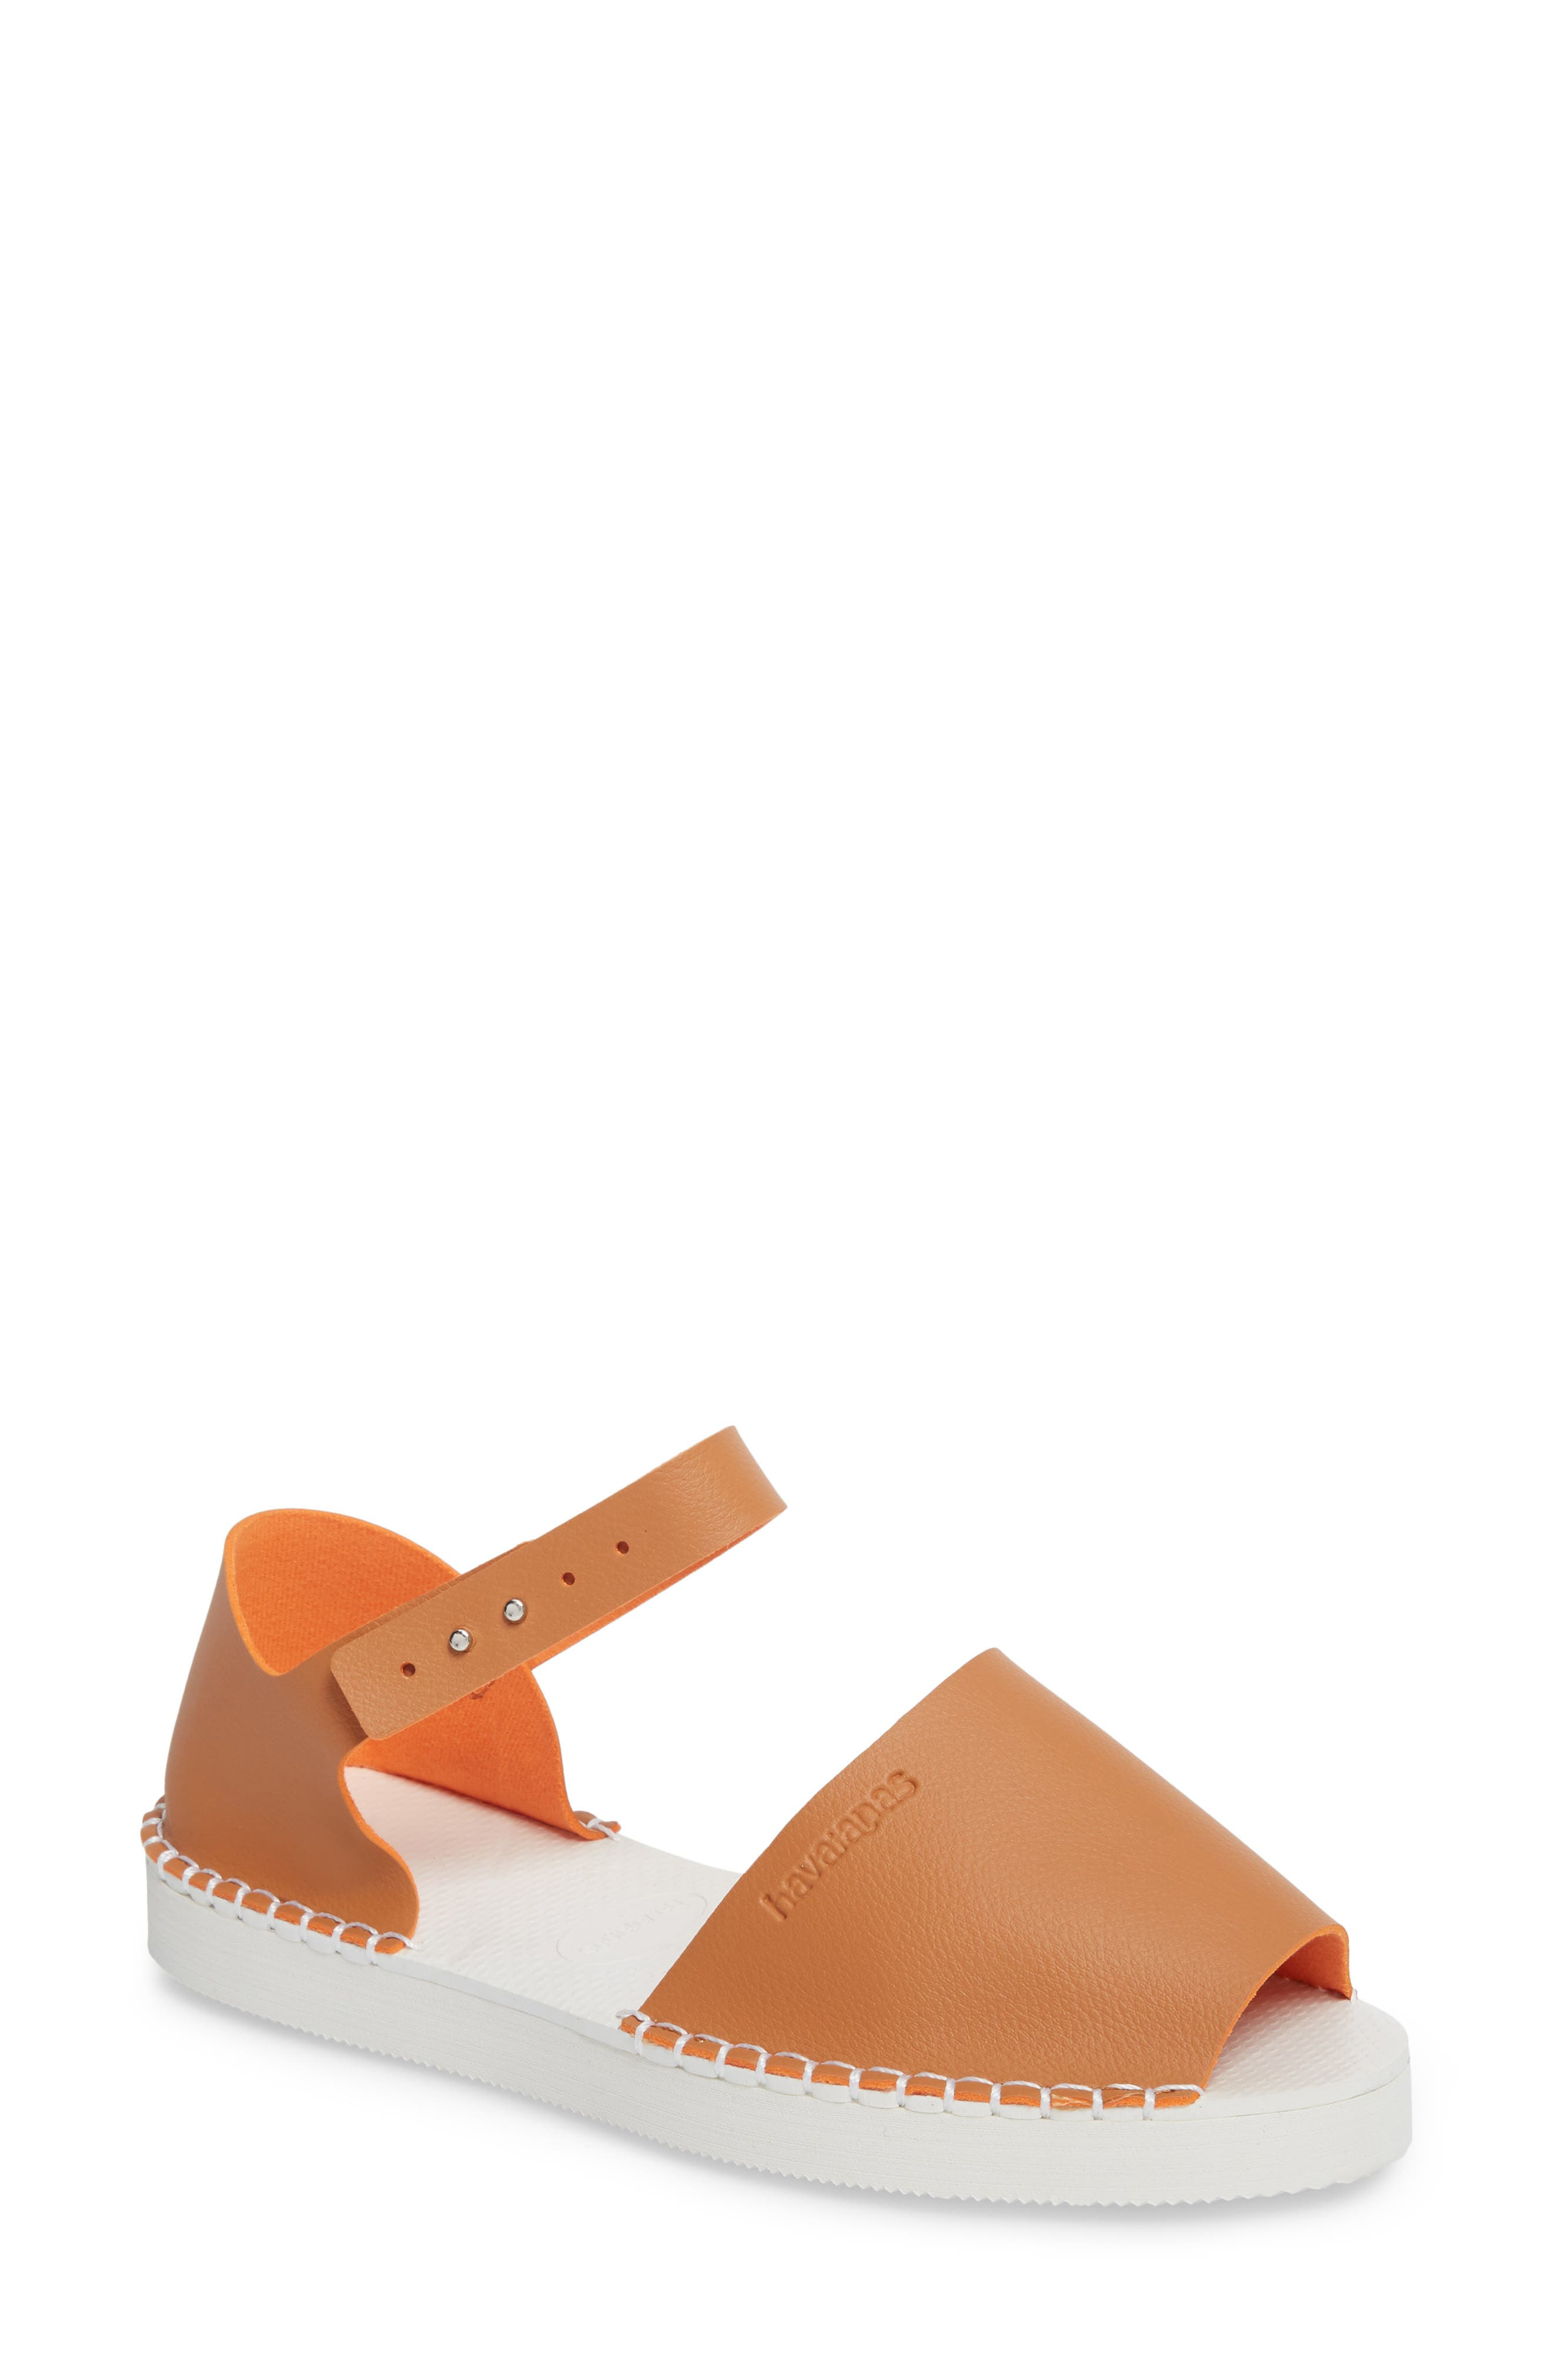 Flatform Fashion Sandal,                         Main,                         color, CAMEL